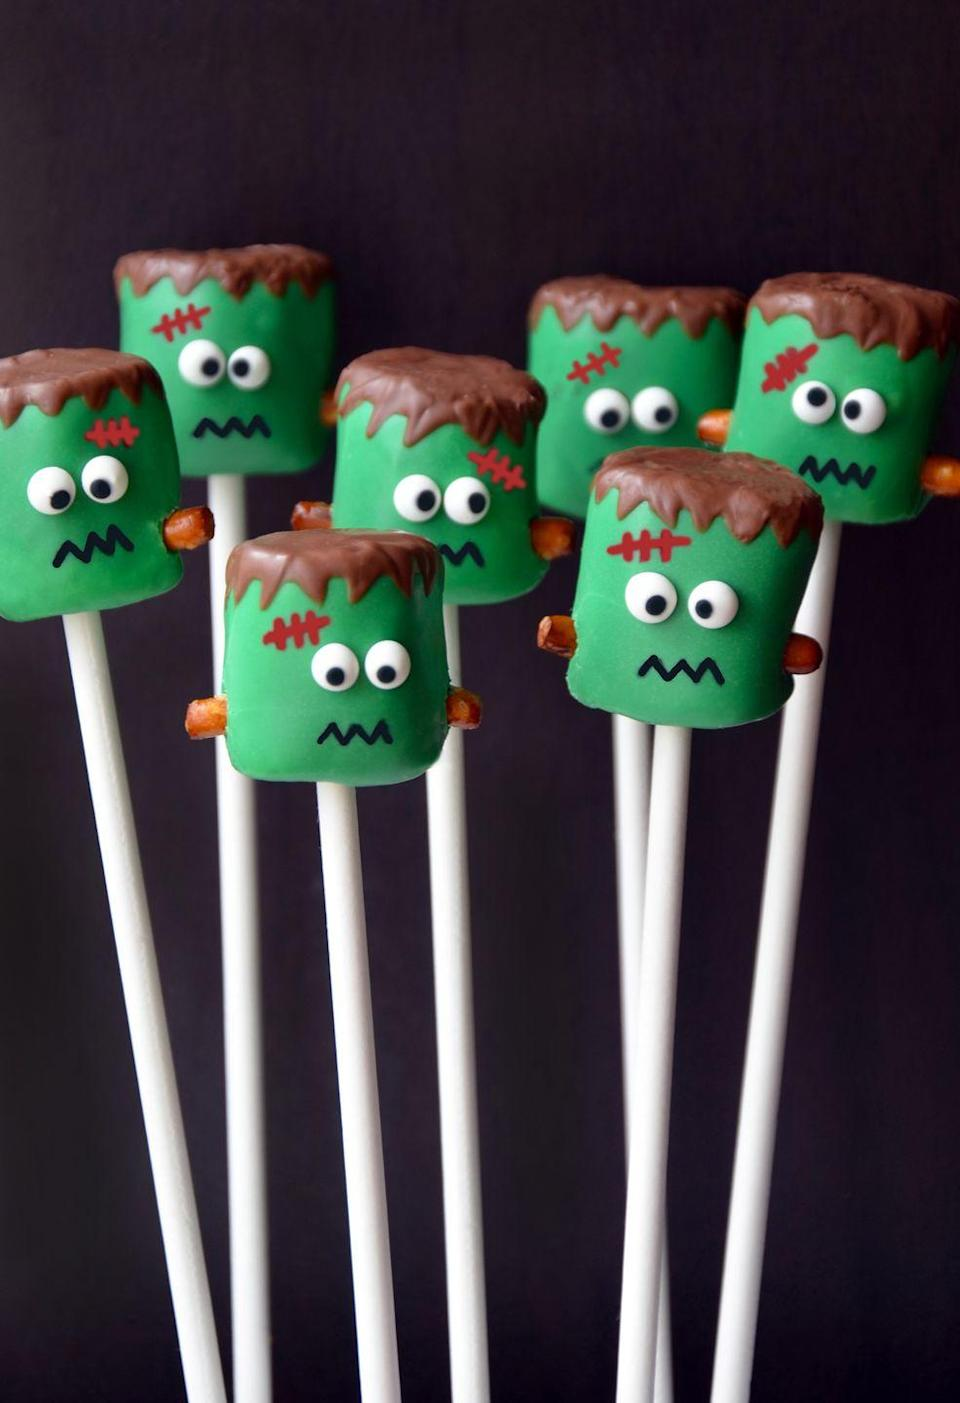 "<p>These little green guys will make anyone smile. Place them in a decorative container to dress up your dessert buffet. </p><p><a class=""link rapid-noclick-resp"" href=""https://www.justataste.com/halloween-frankenstein-marshmallow-pops-recipe/"" rel=""nofollow noopener"" target=""_blank"" data-ylk=""slk:GET THE RECIPE"">GET THE RECIPE</a></p>"